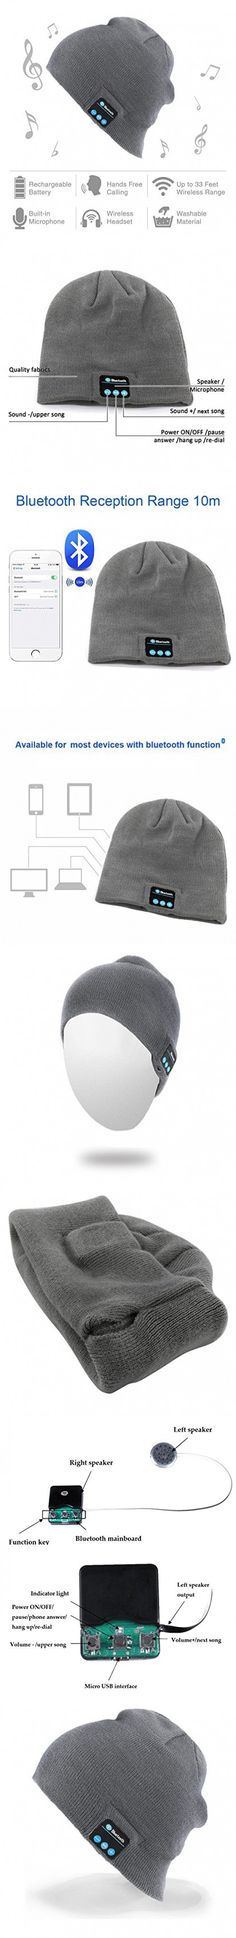 Momoday® Bluetooth Music Soft Warm Beanie Hat Cap with Stereo Headphone Headset Speaker Wireless Mic Hands-free for Men Women Speaker Winter Outdoor Sport Best Gift (Light Grey)